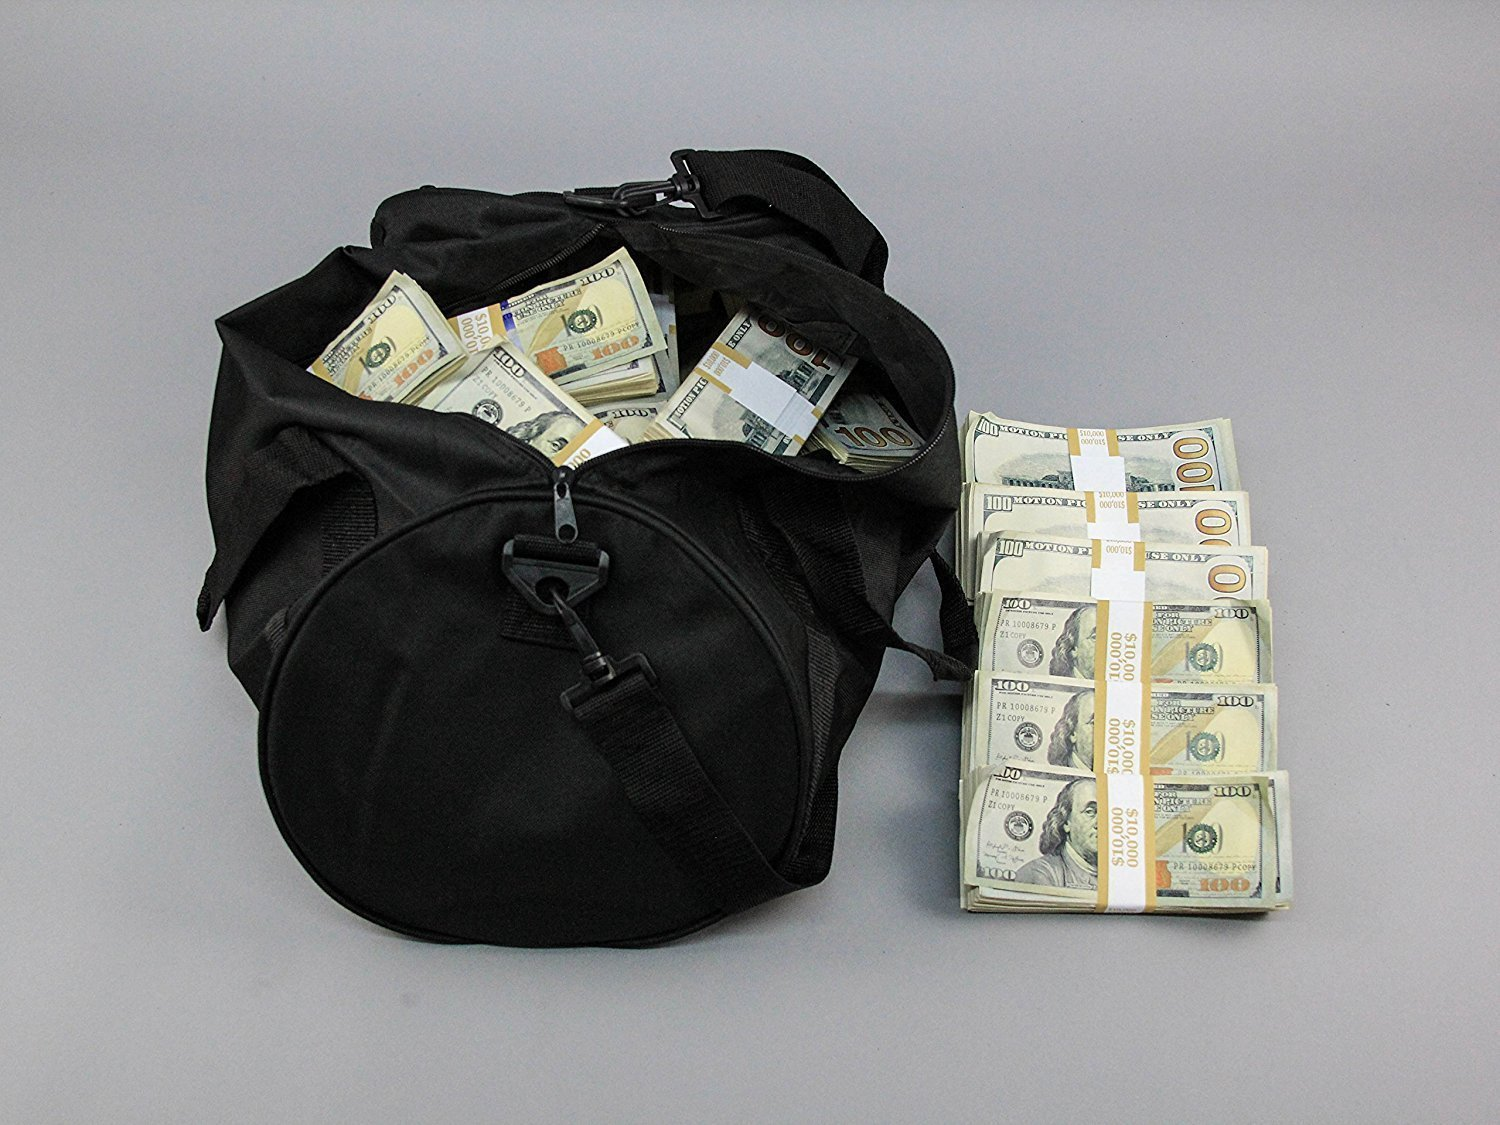 PROP MONEY Real Looking Copy NEW STYLE $100s - AGED BLANK FILLER DUFFLE BAG Pack $500,000 for Movie, TV, Videos & Novelty